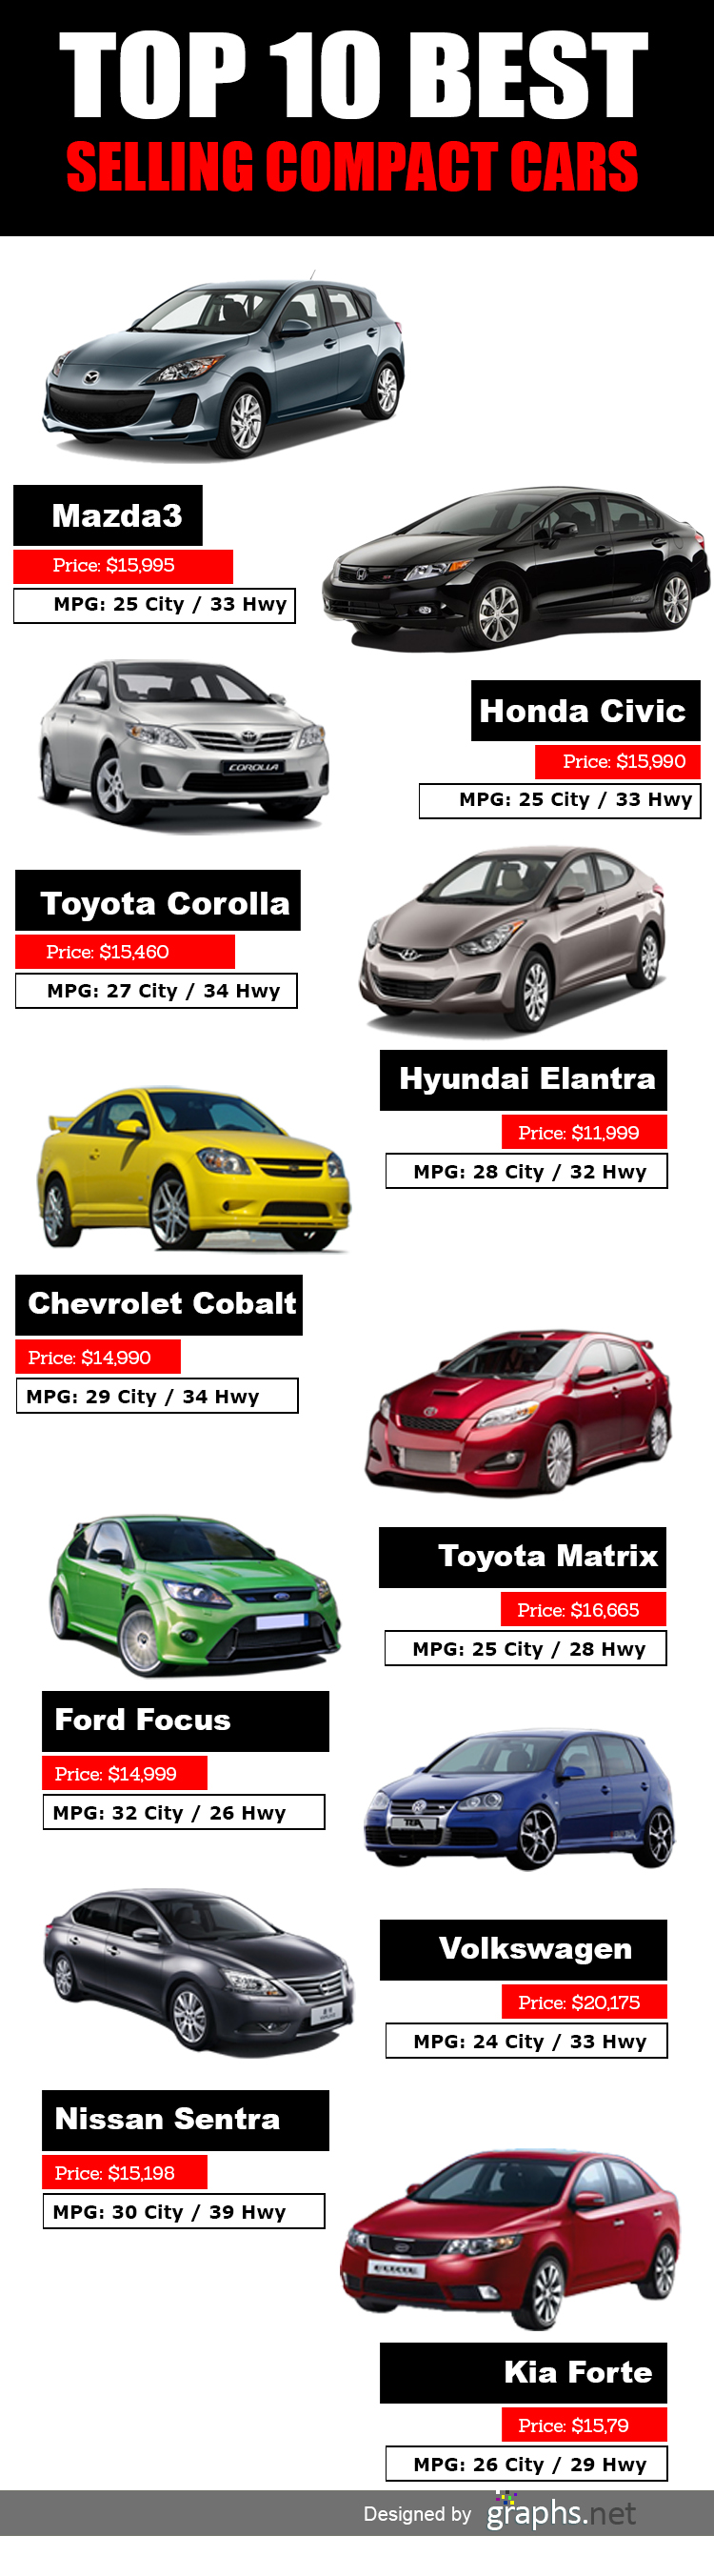 TOP 10 BEST COMPACT CARS - infographic | Infographics انفوجرافيك ...